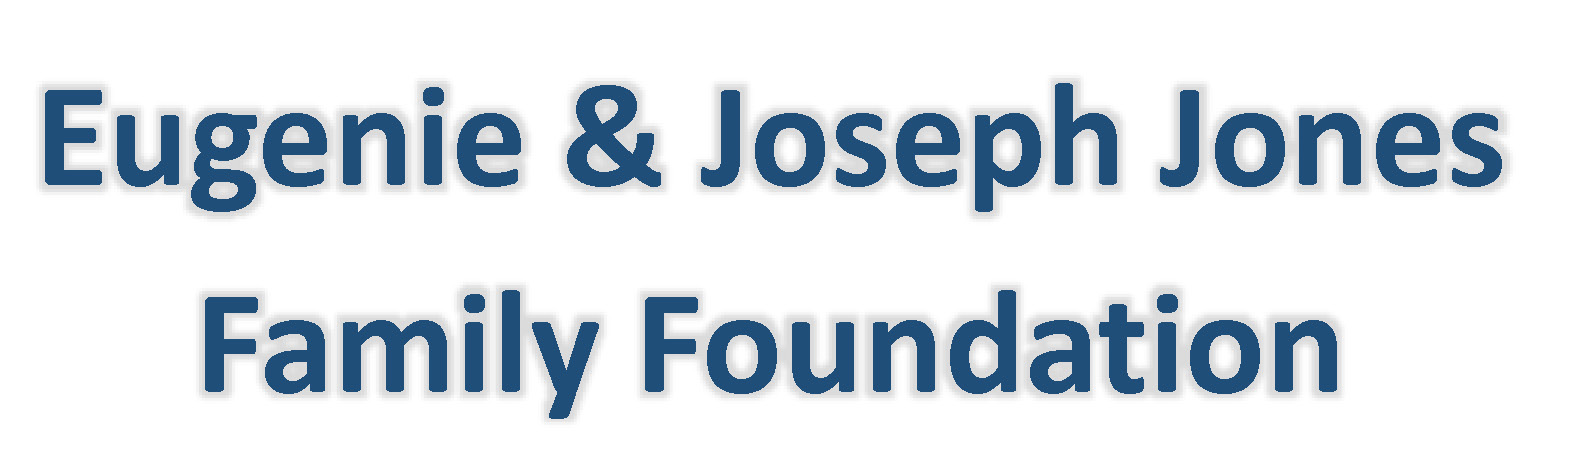 Eugenie-Joseph Jones Family Foundation